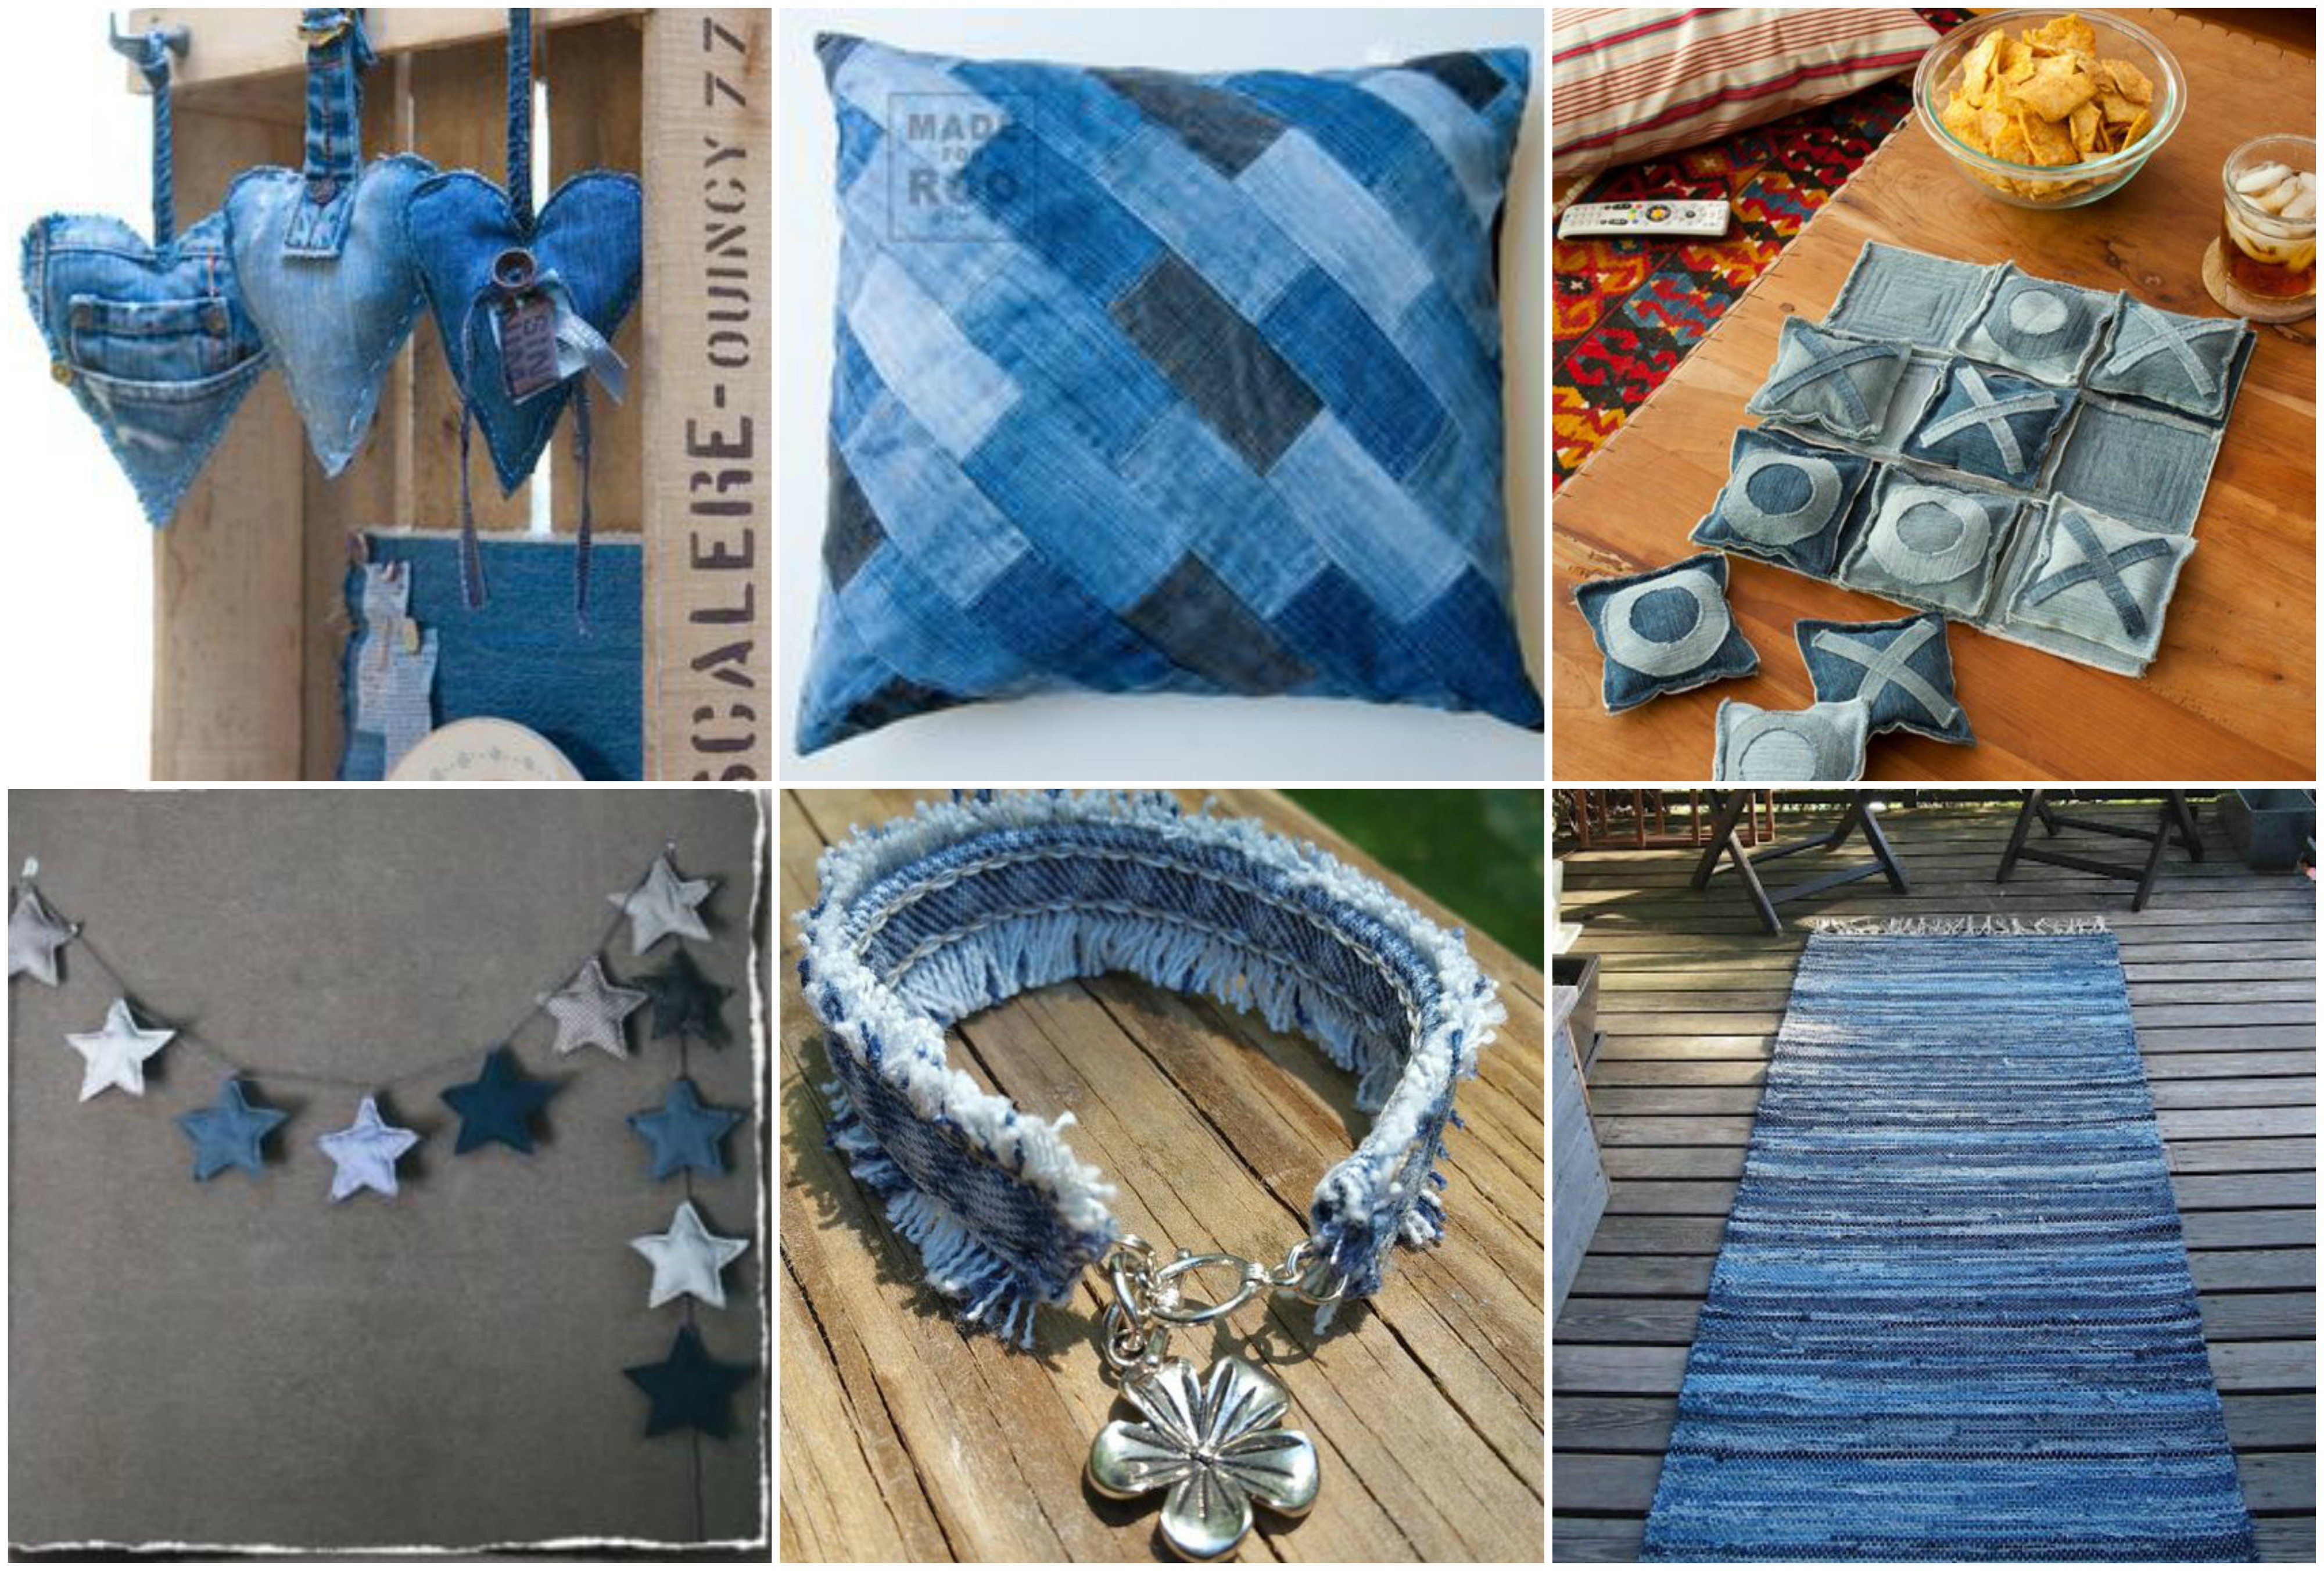 15 Tolle Upcycling Ideen Aus Alten Jeans